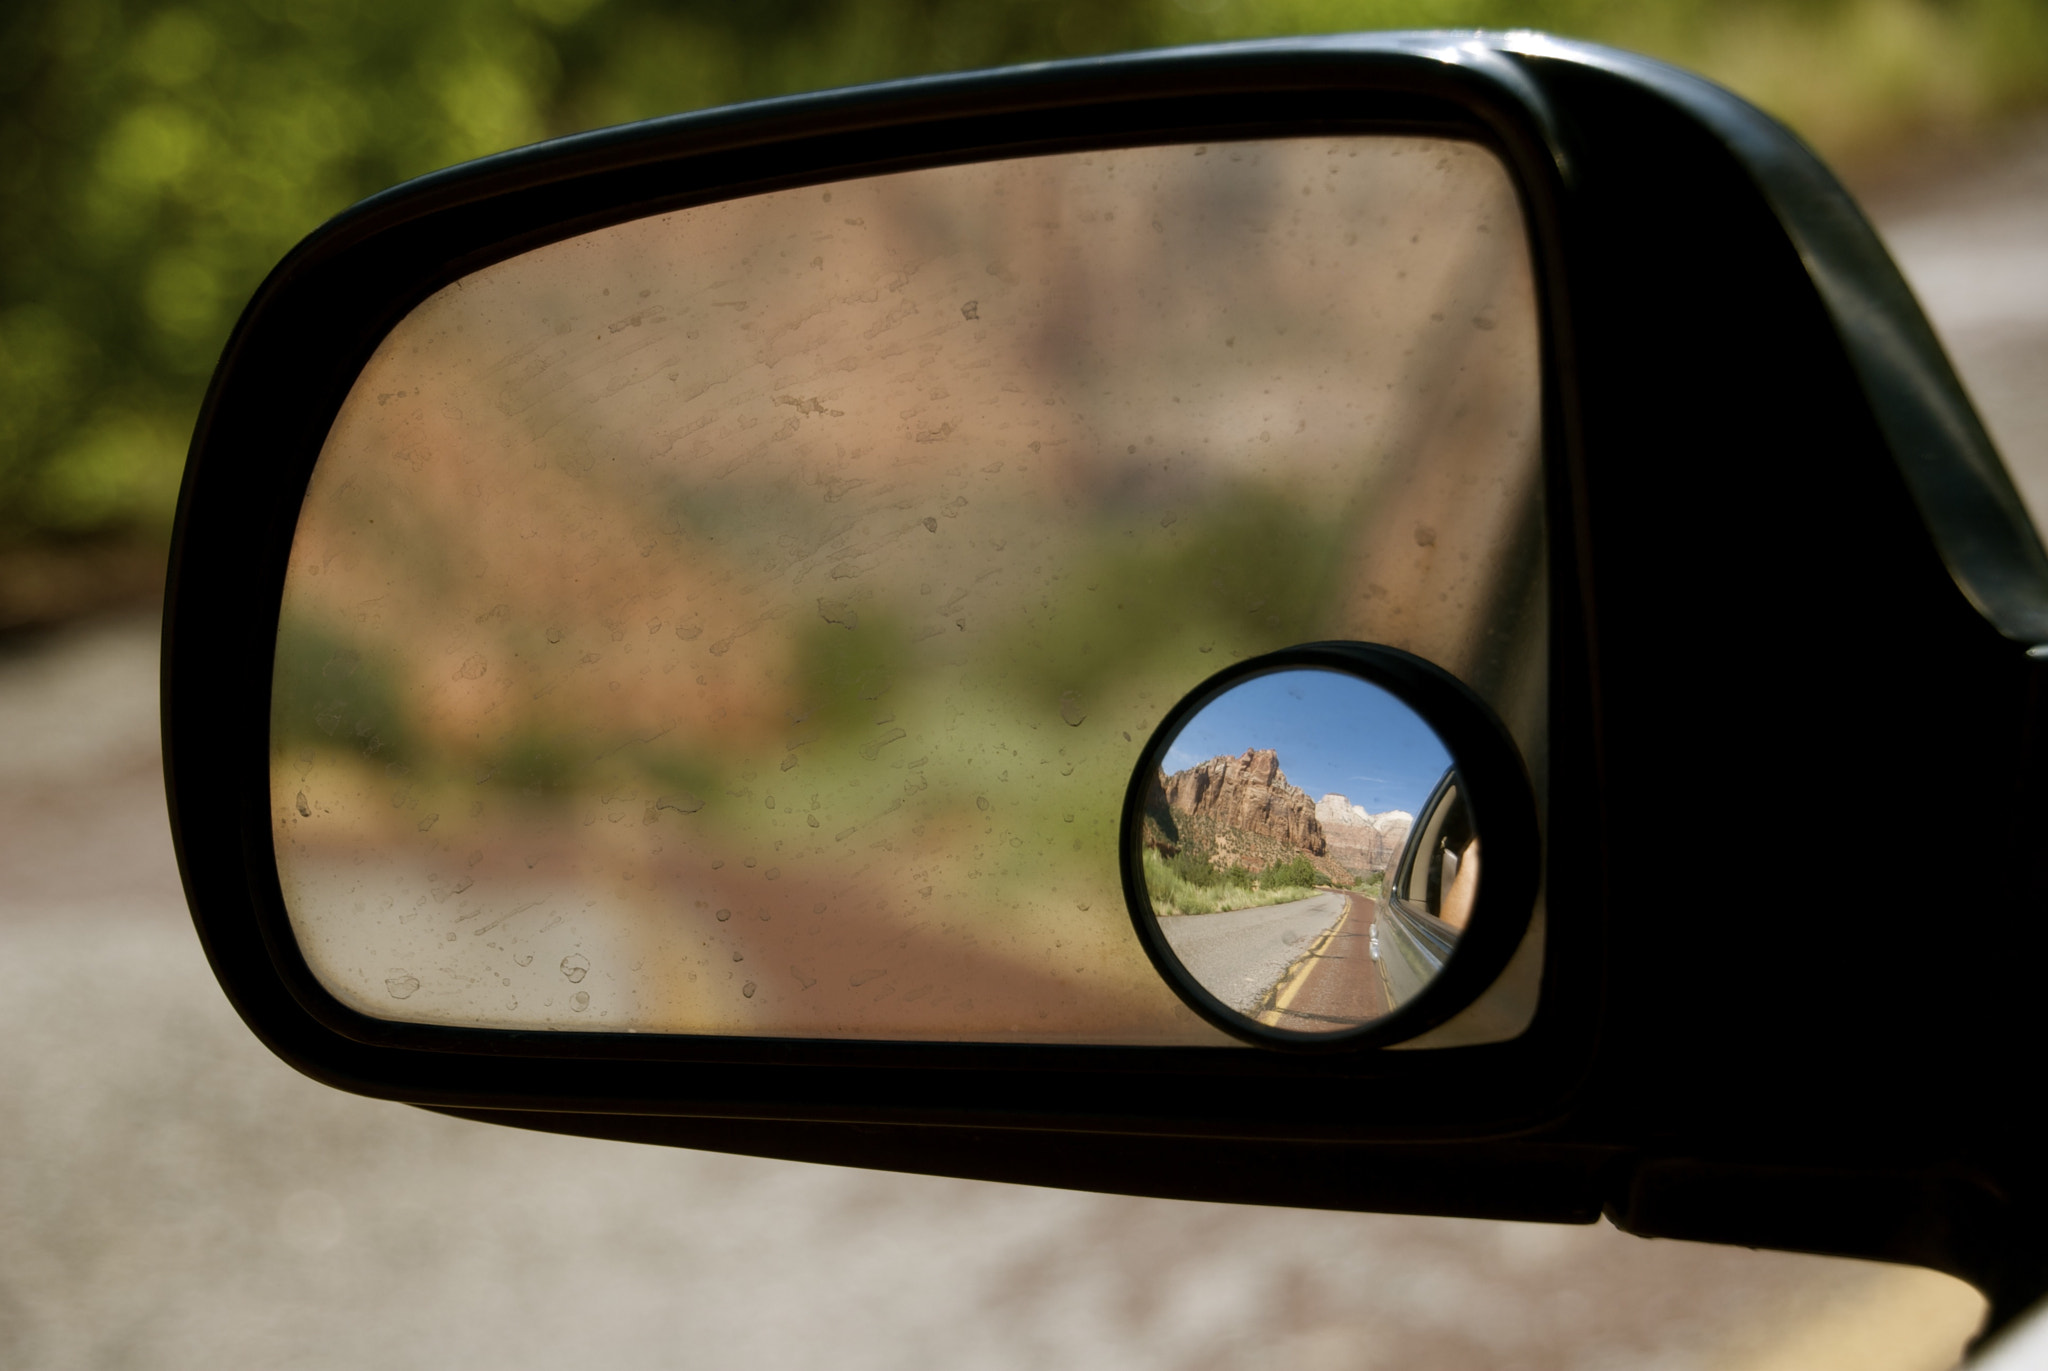 Photograph Rearview Mirror by ND Strupler on 500px